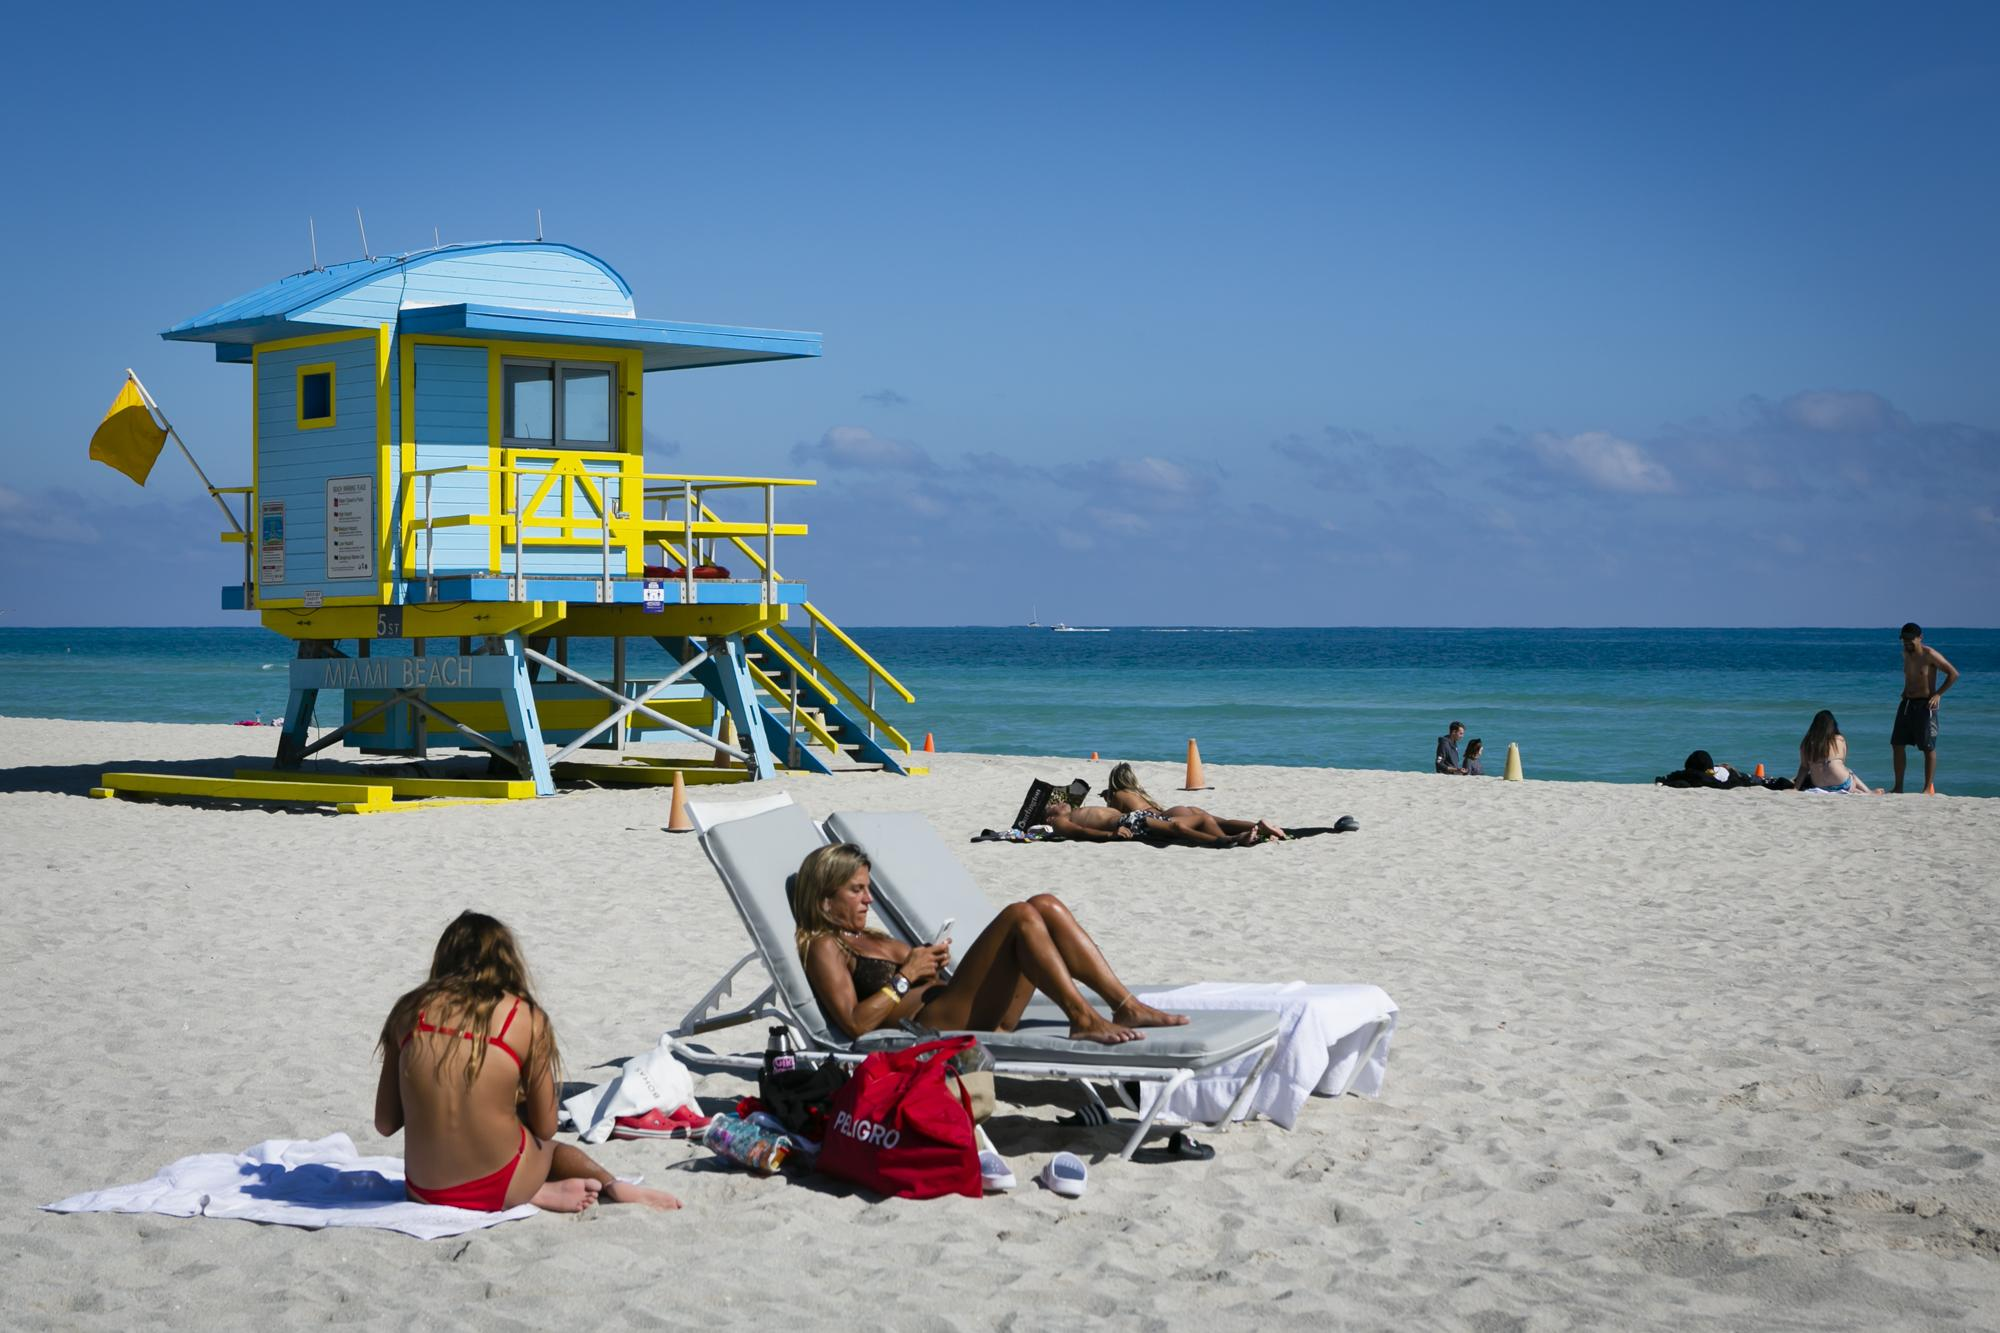 People sunbath at the beach, in Miami Beach, Florida on January 10, 2021. Eva Marie UZCATEGUI